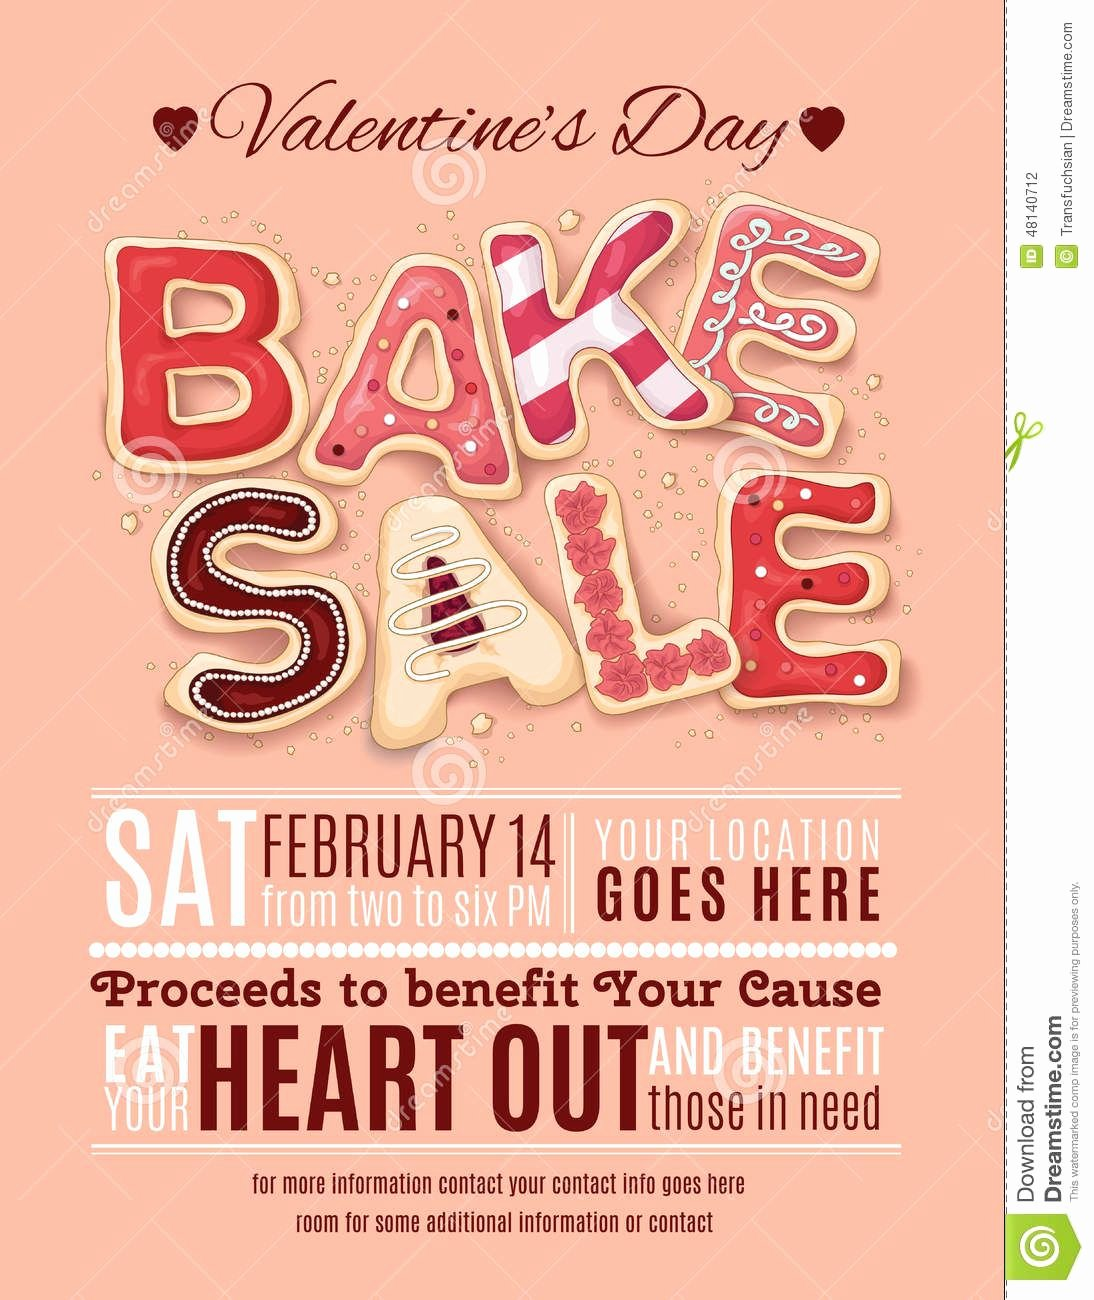 Bake Sale Flyer Template Luxury Valentines Day Bake Sale Flyer Template Download From